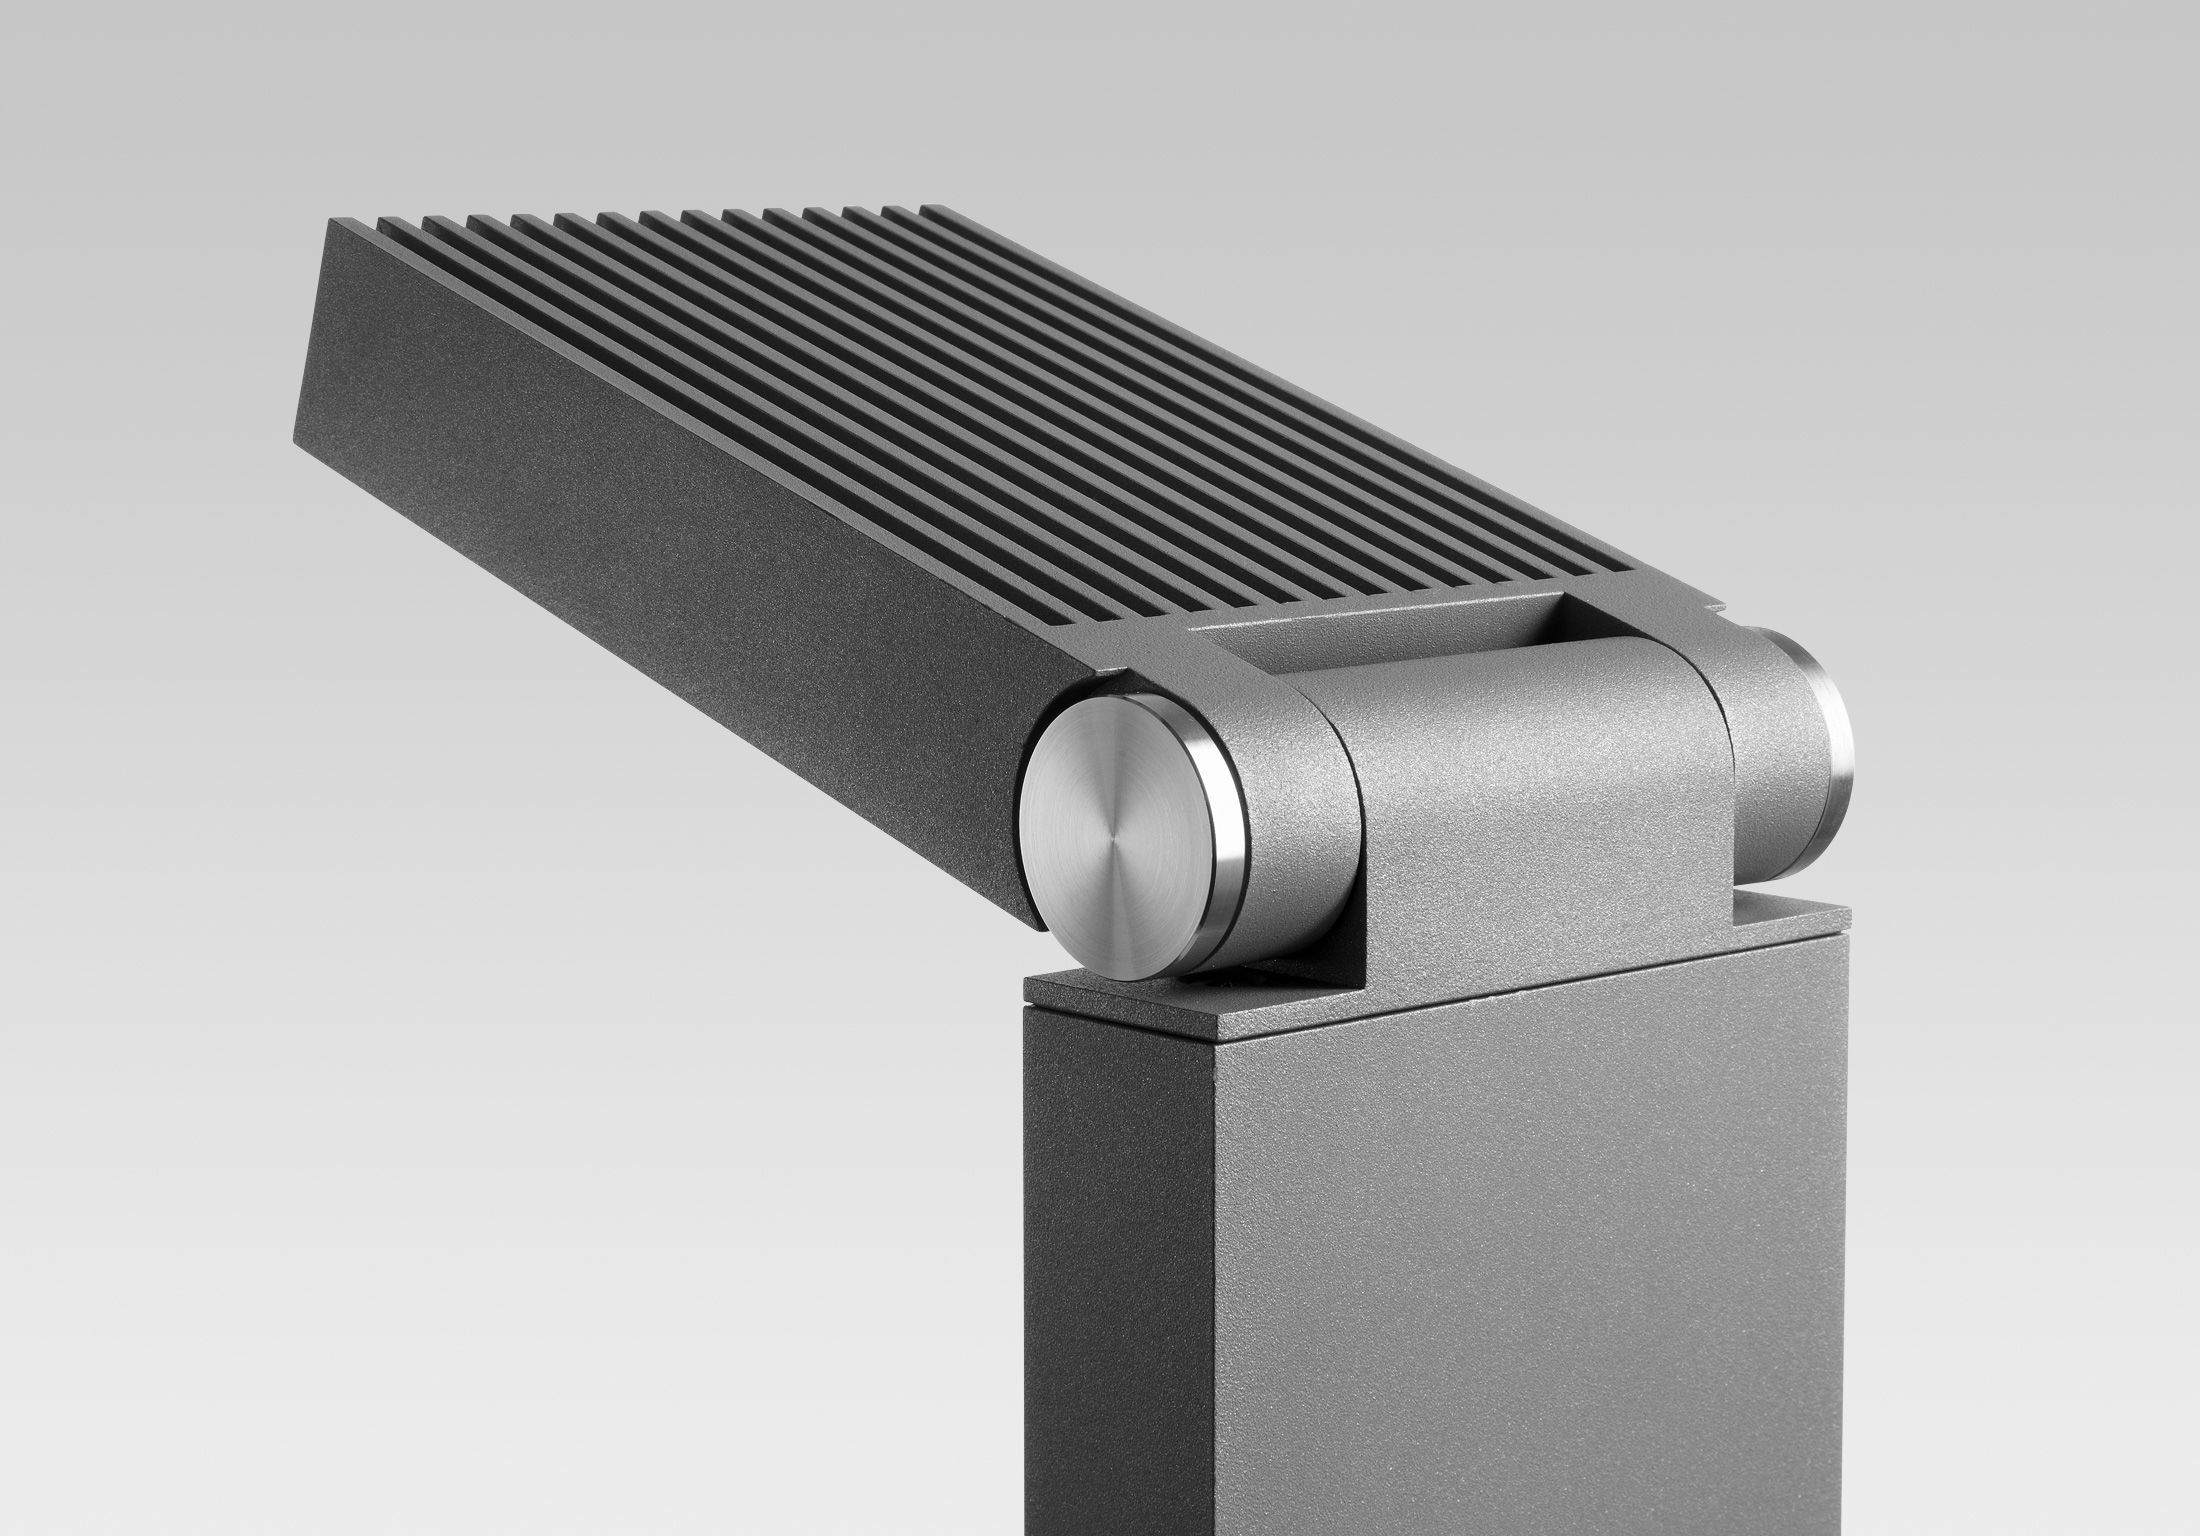 Products We Like Lamp Lighting Metal Aluminium Cooling Joint At Streamcut Organic Design Industrial Design Id Design